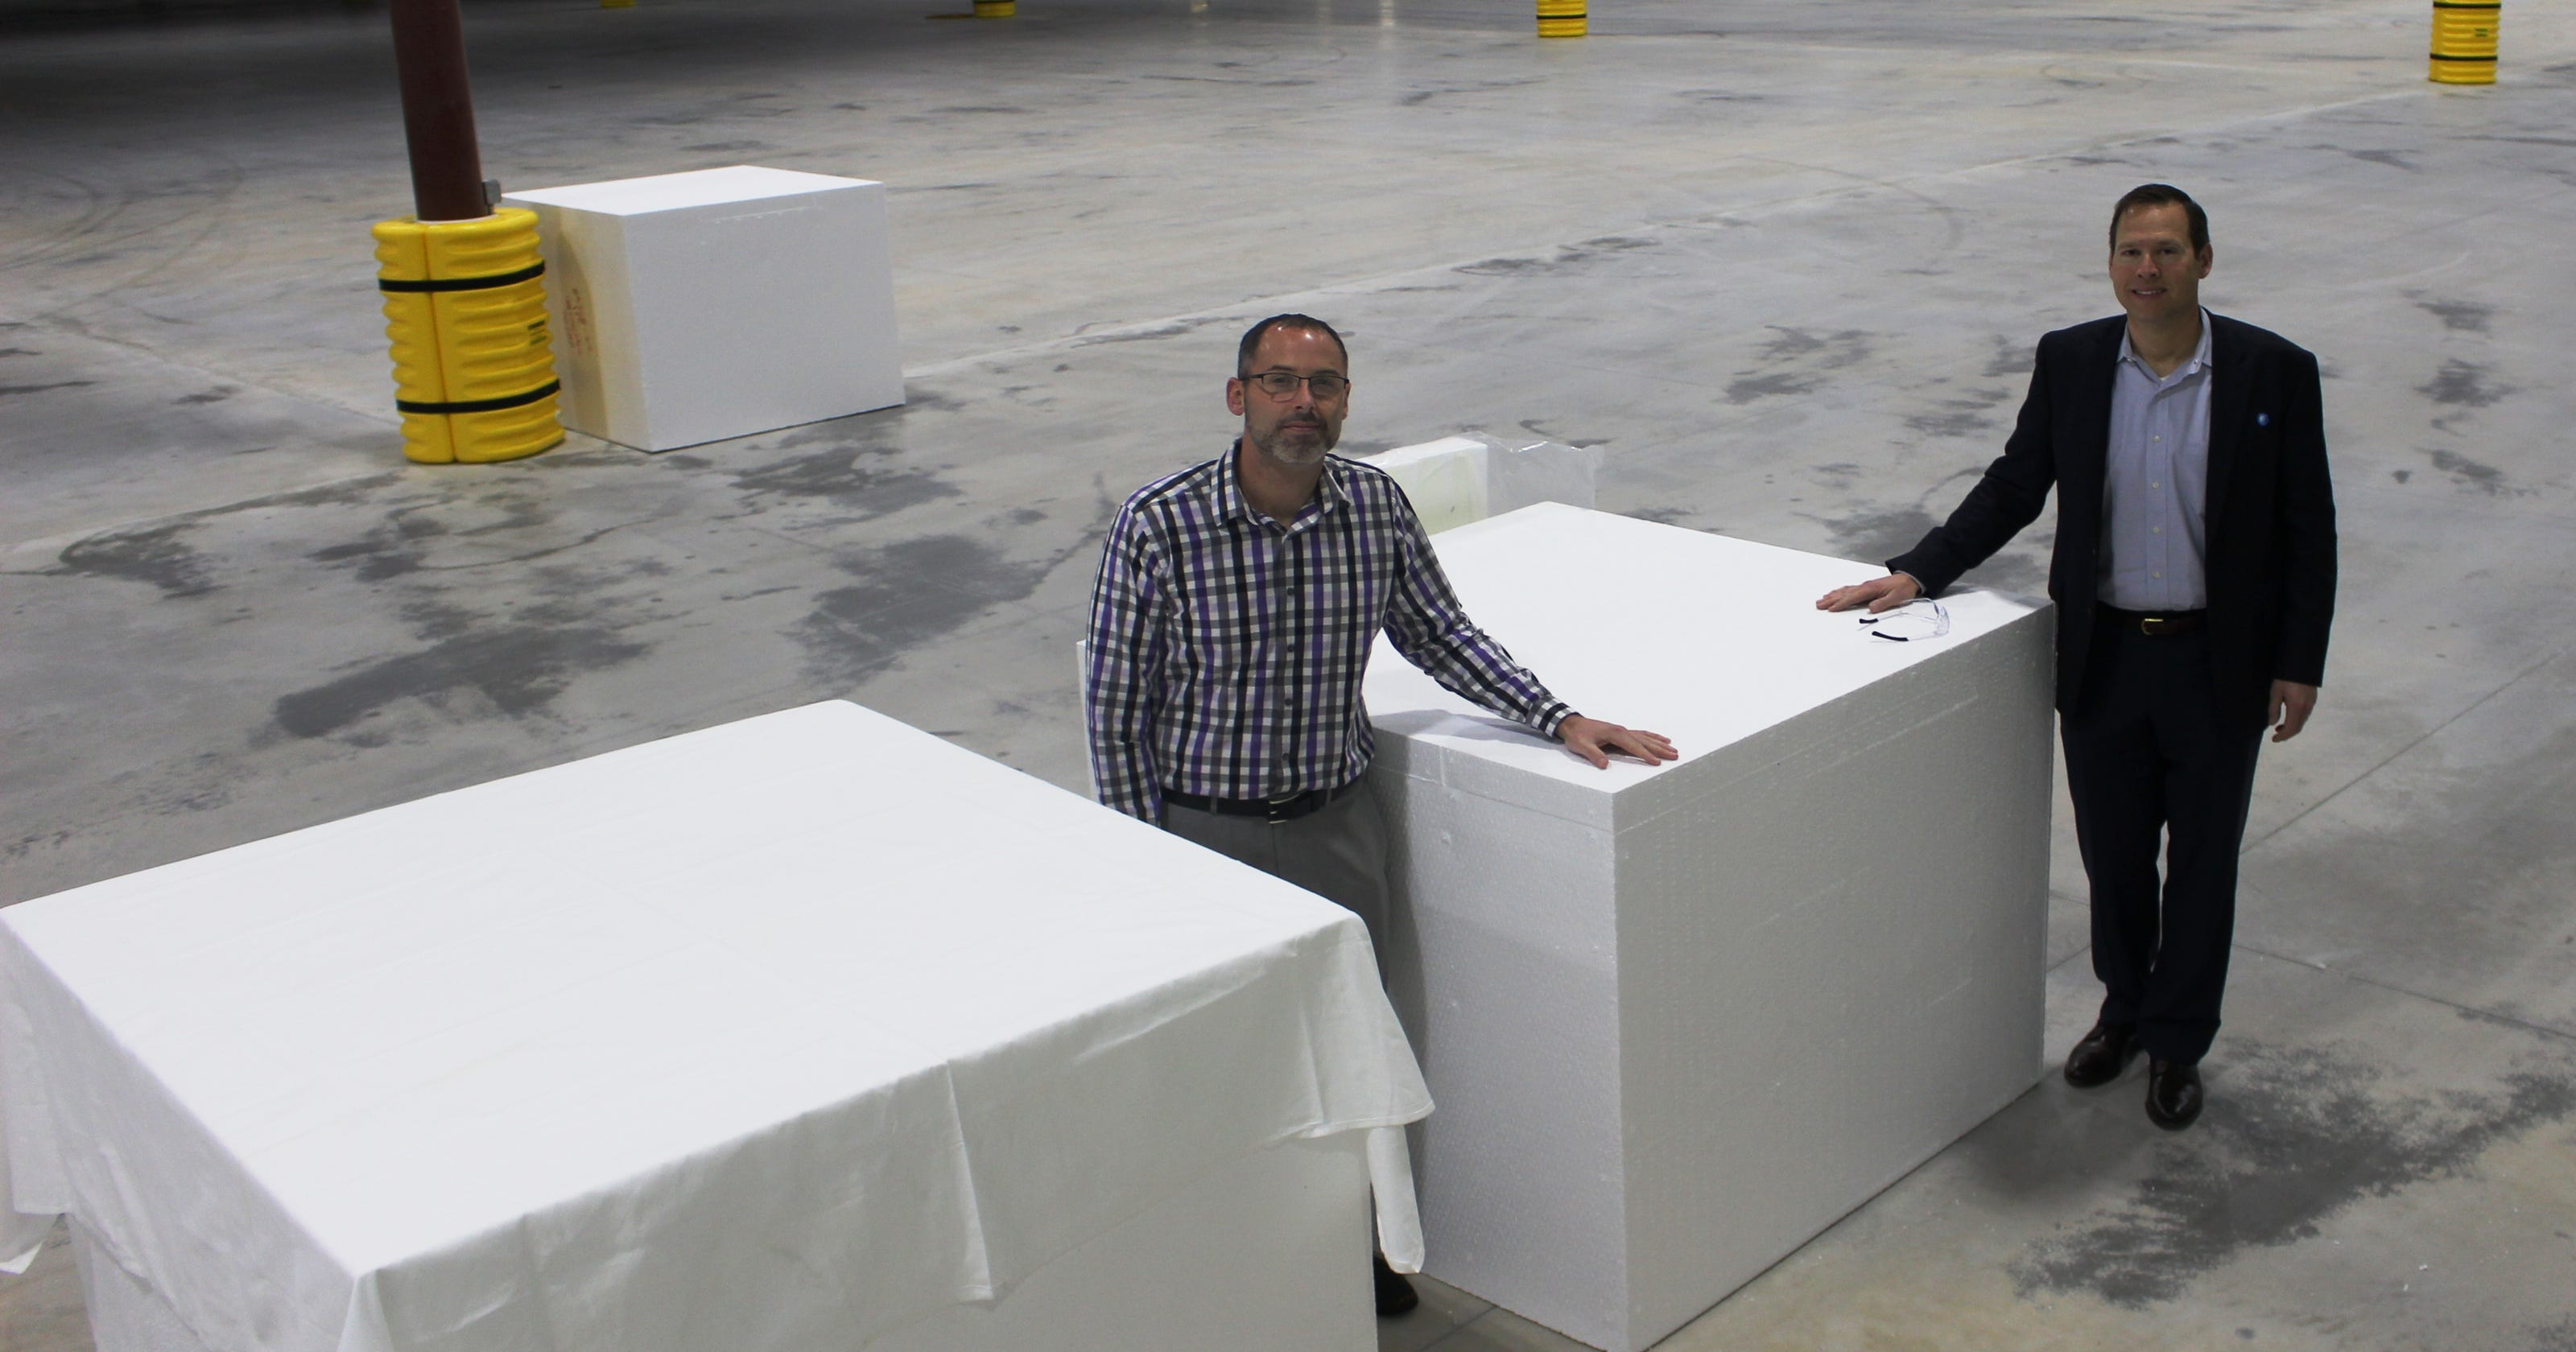 Plymouth Foam expands into new addition